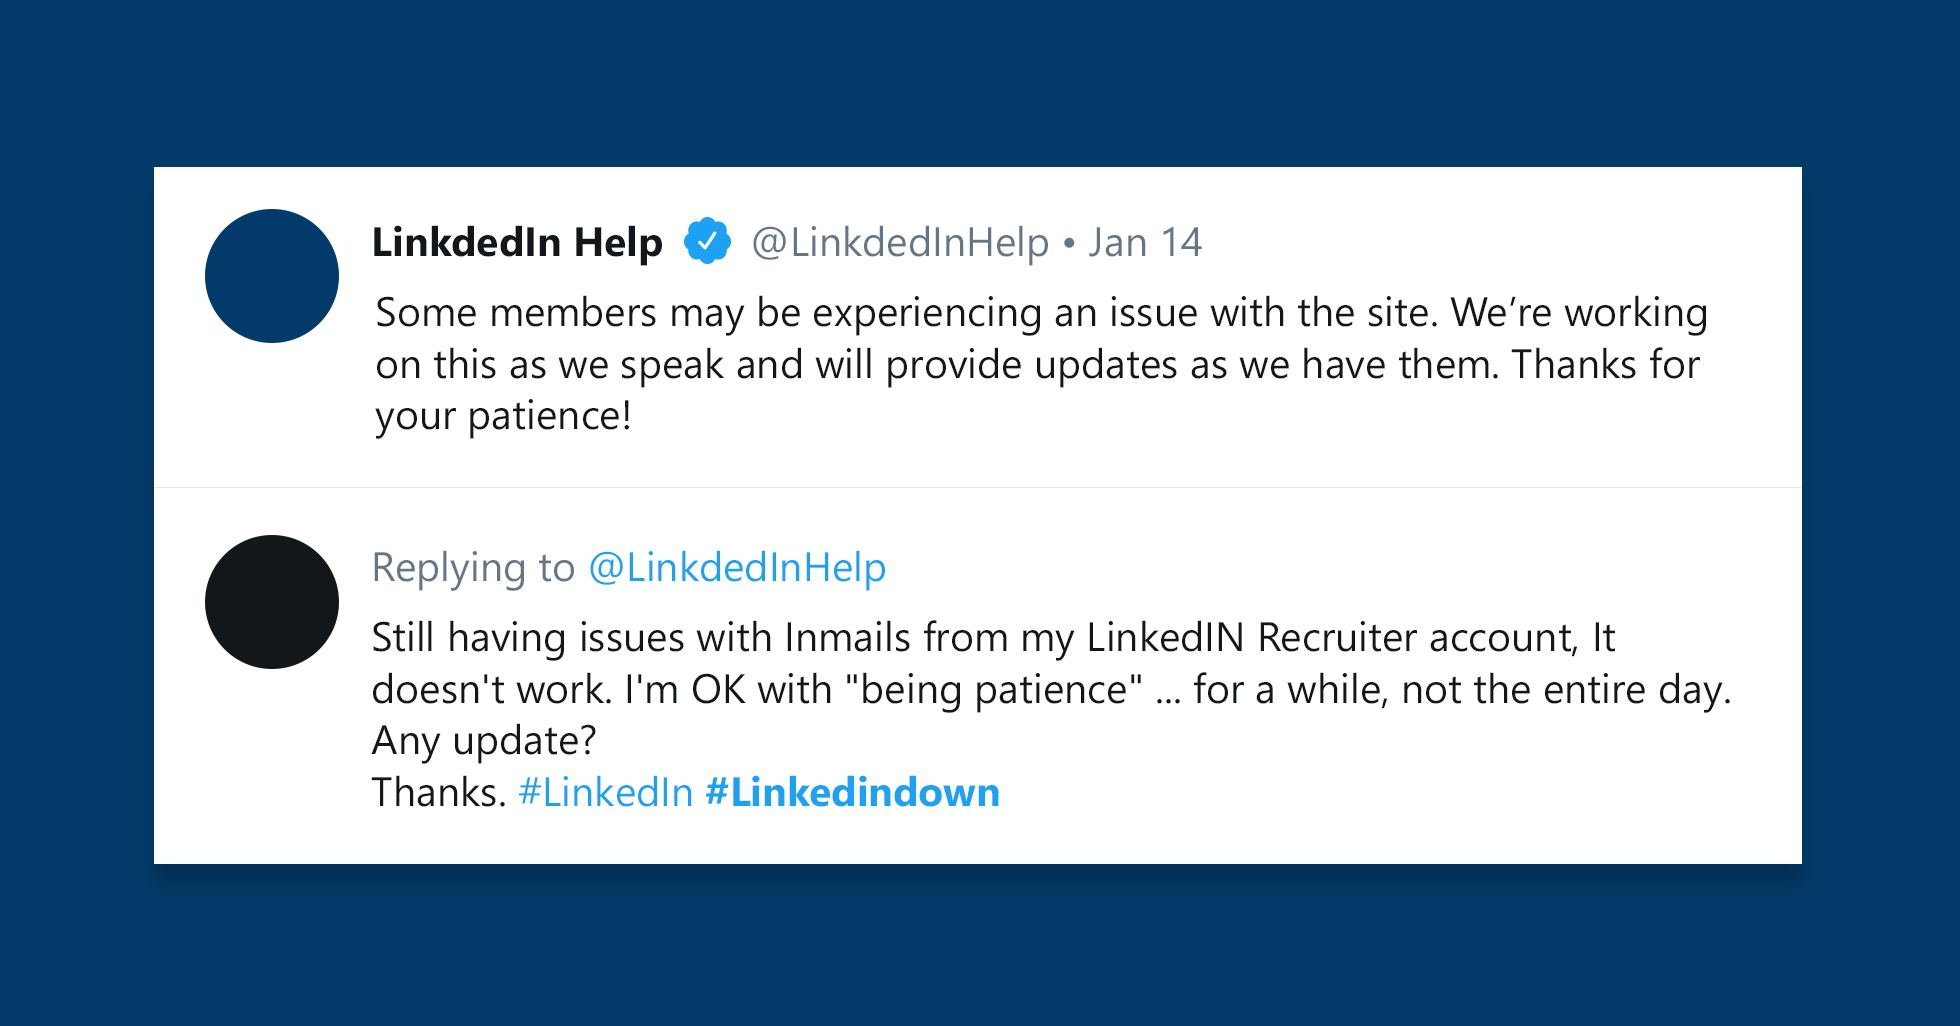 Tweets about LinkedIn downtime